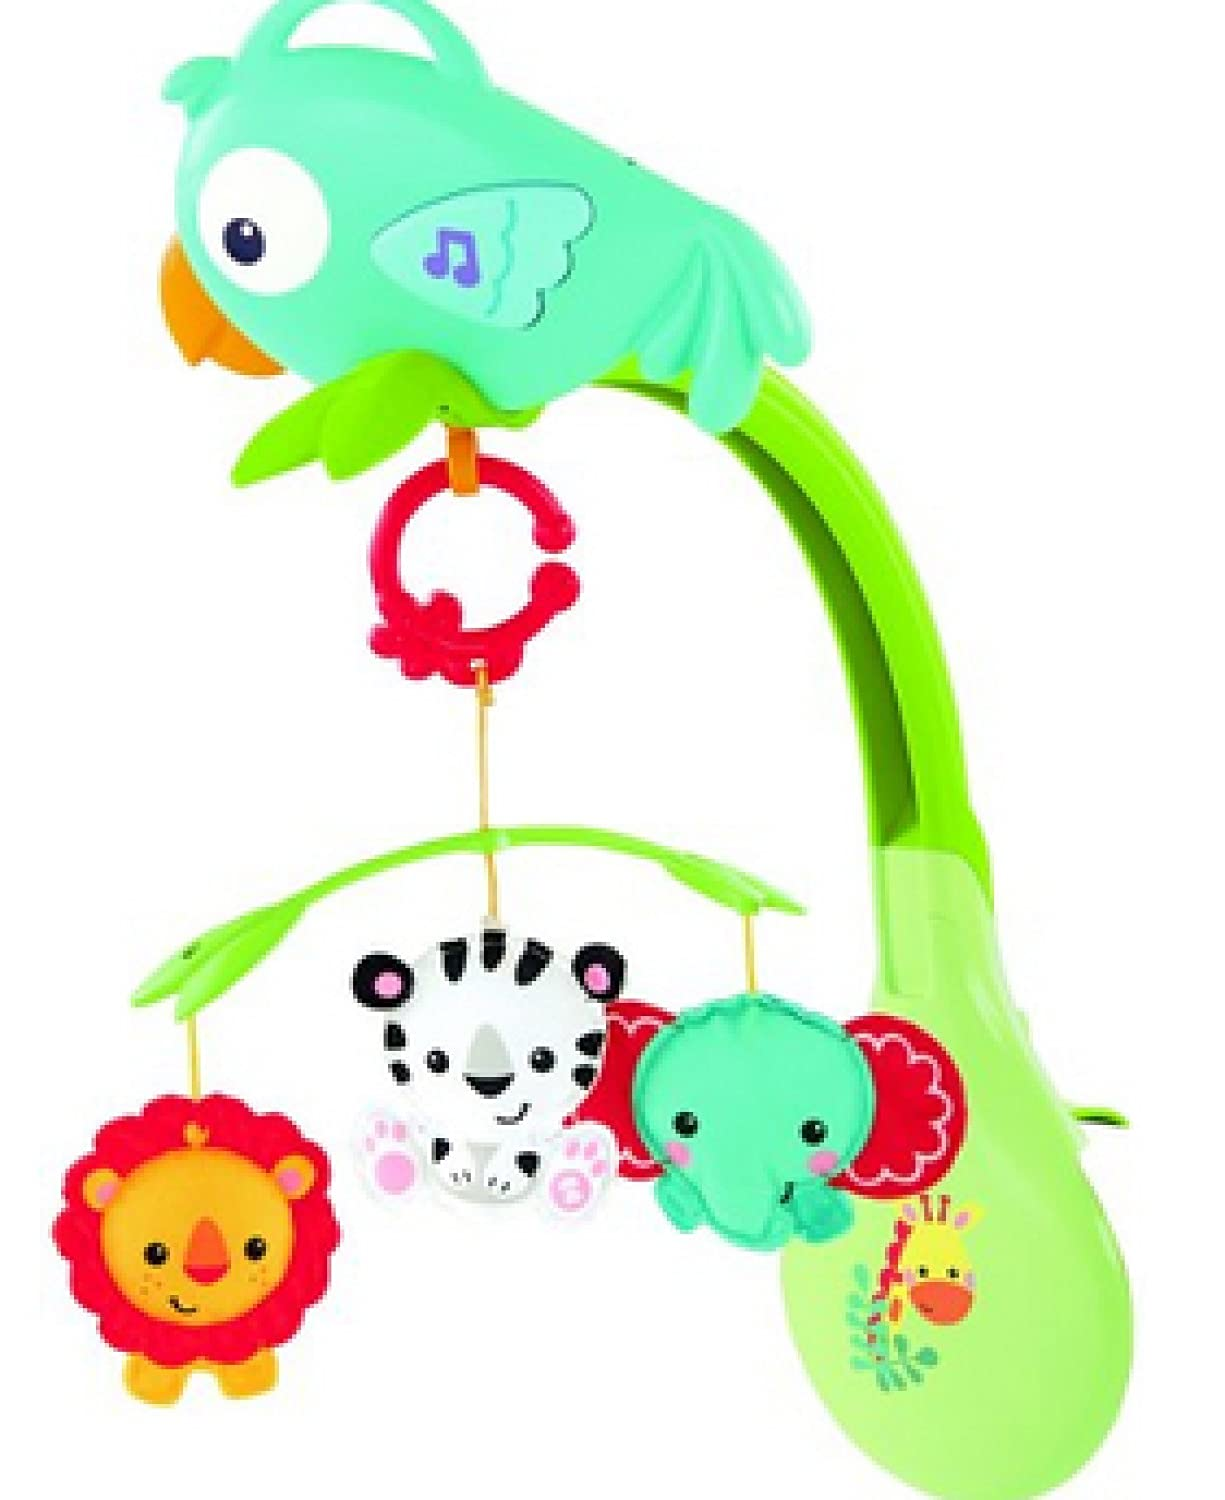 Fisher-Price Rainforest 3-in-1 Musical Mobile [並行輸入品]   B0138KOY0A